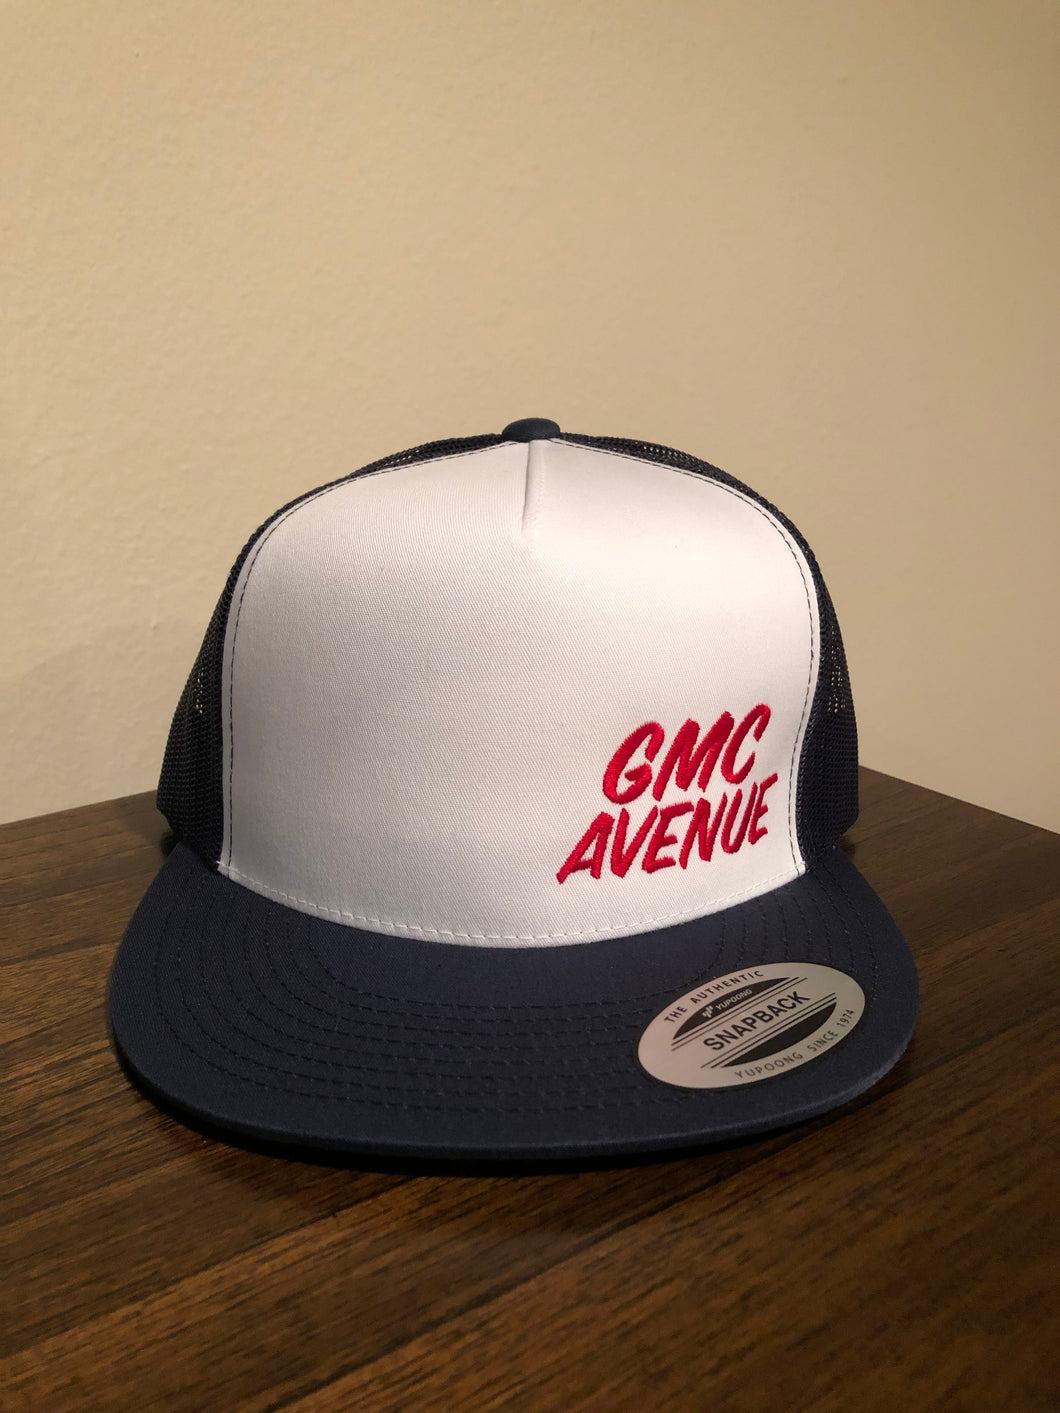 GMC AVE SPEEDSTER NAVY HAT WITH WHITE PANEL RED STITCHING